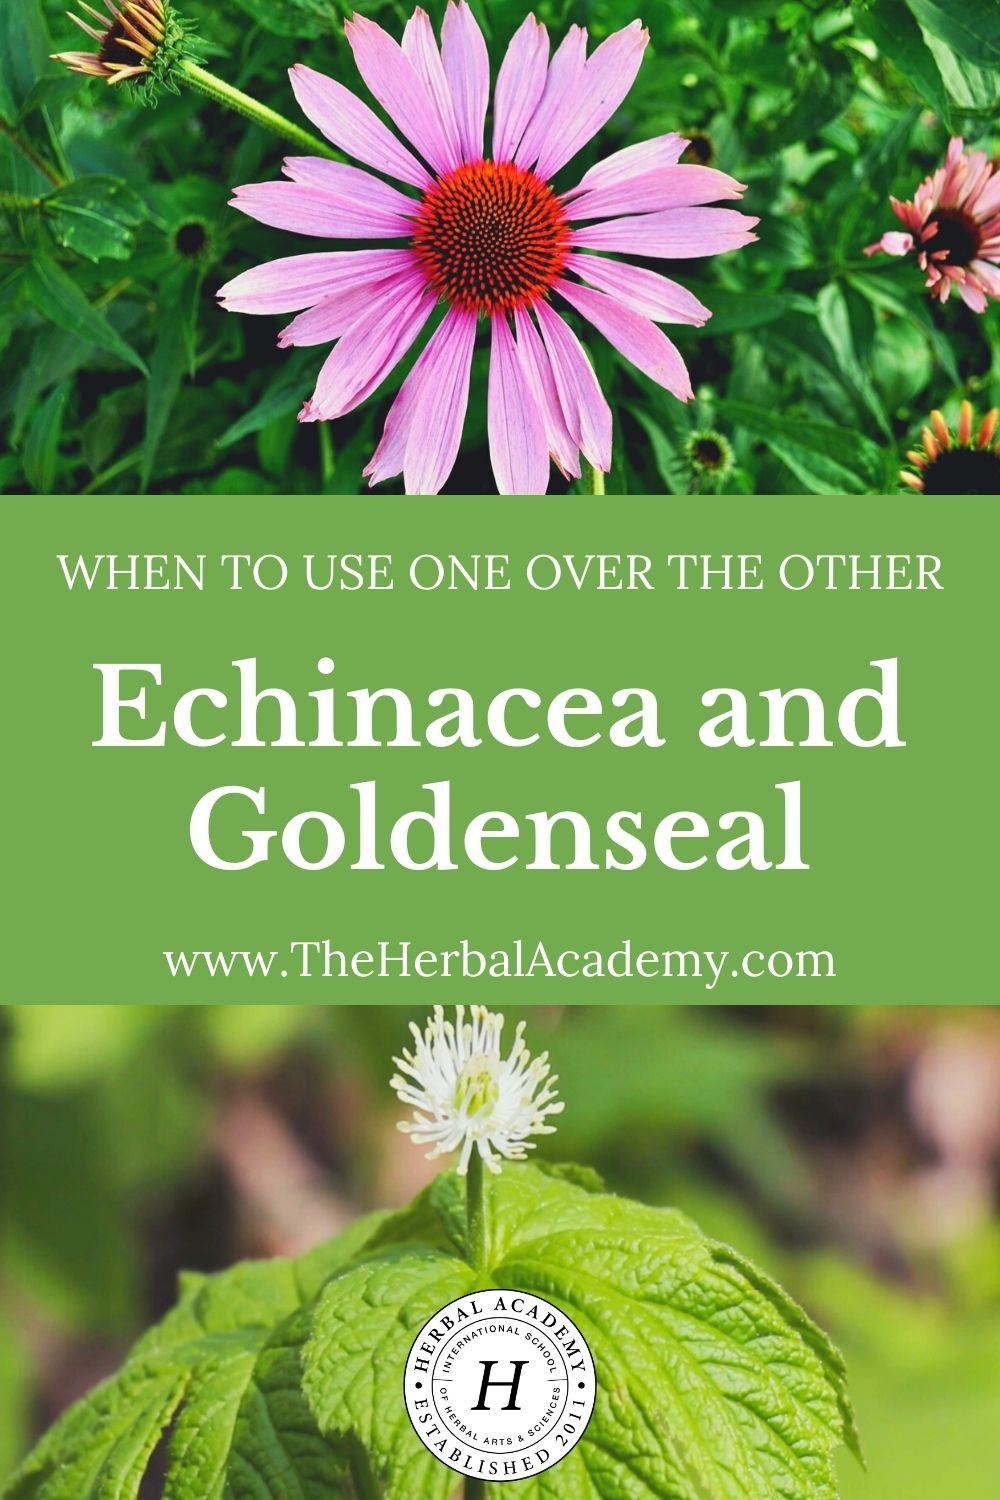 Echinacea and Goldenseal: When to Use One Over the Other | Herbal Academy | In this post, we offer guidance about the best times to use echinacea and goldenseal, along with sustainable replacement options for each.